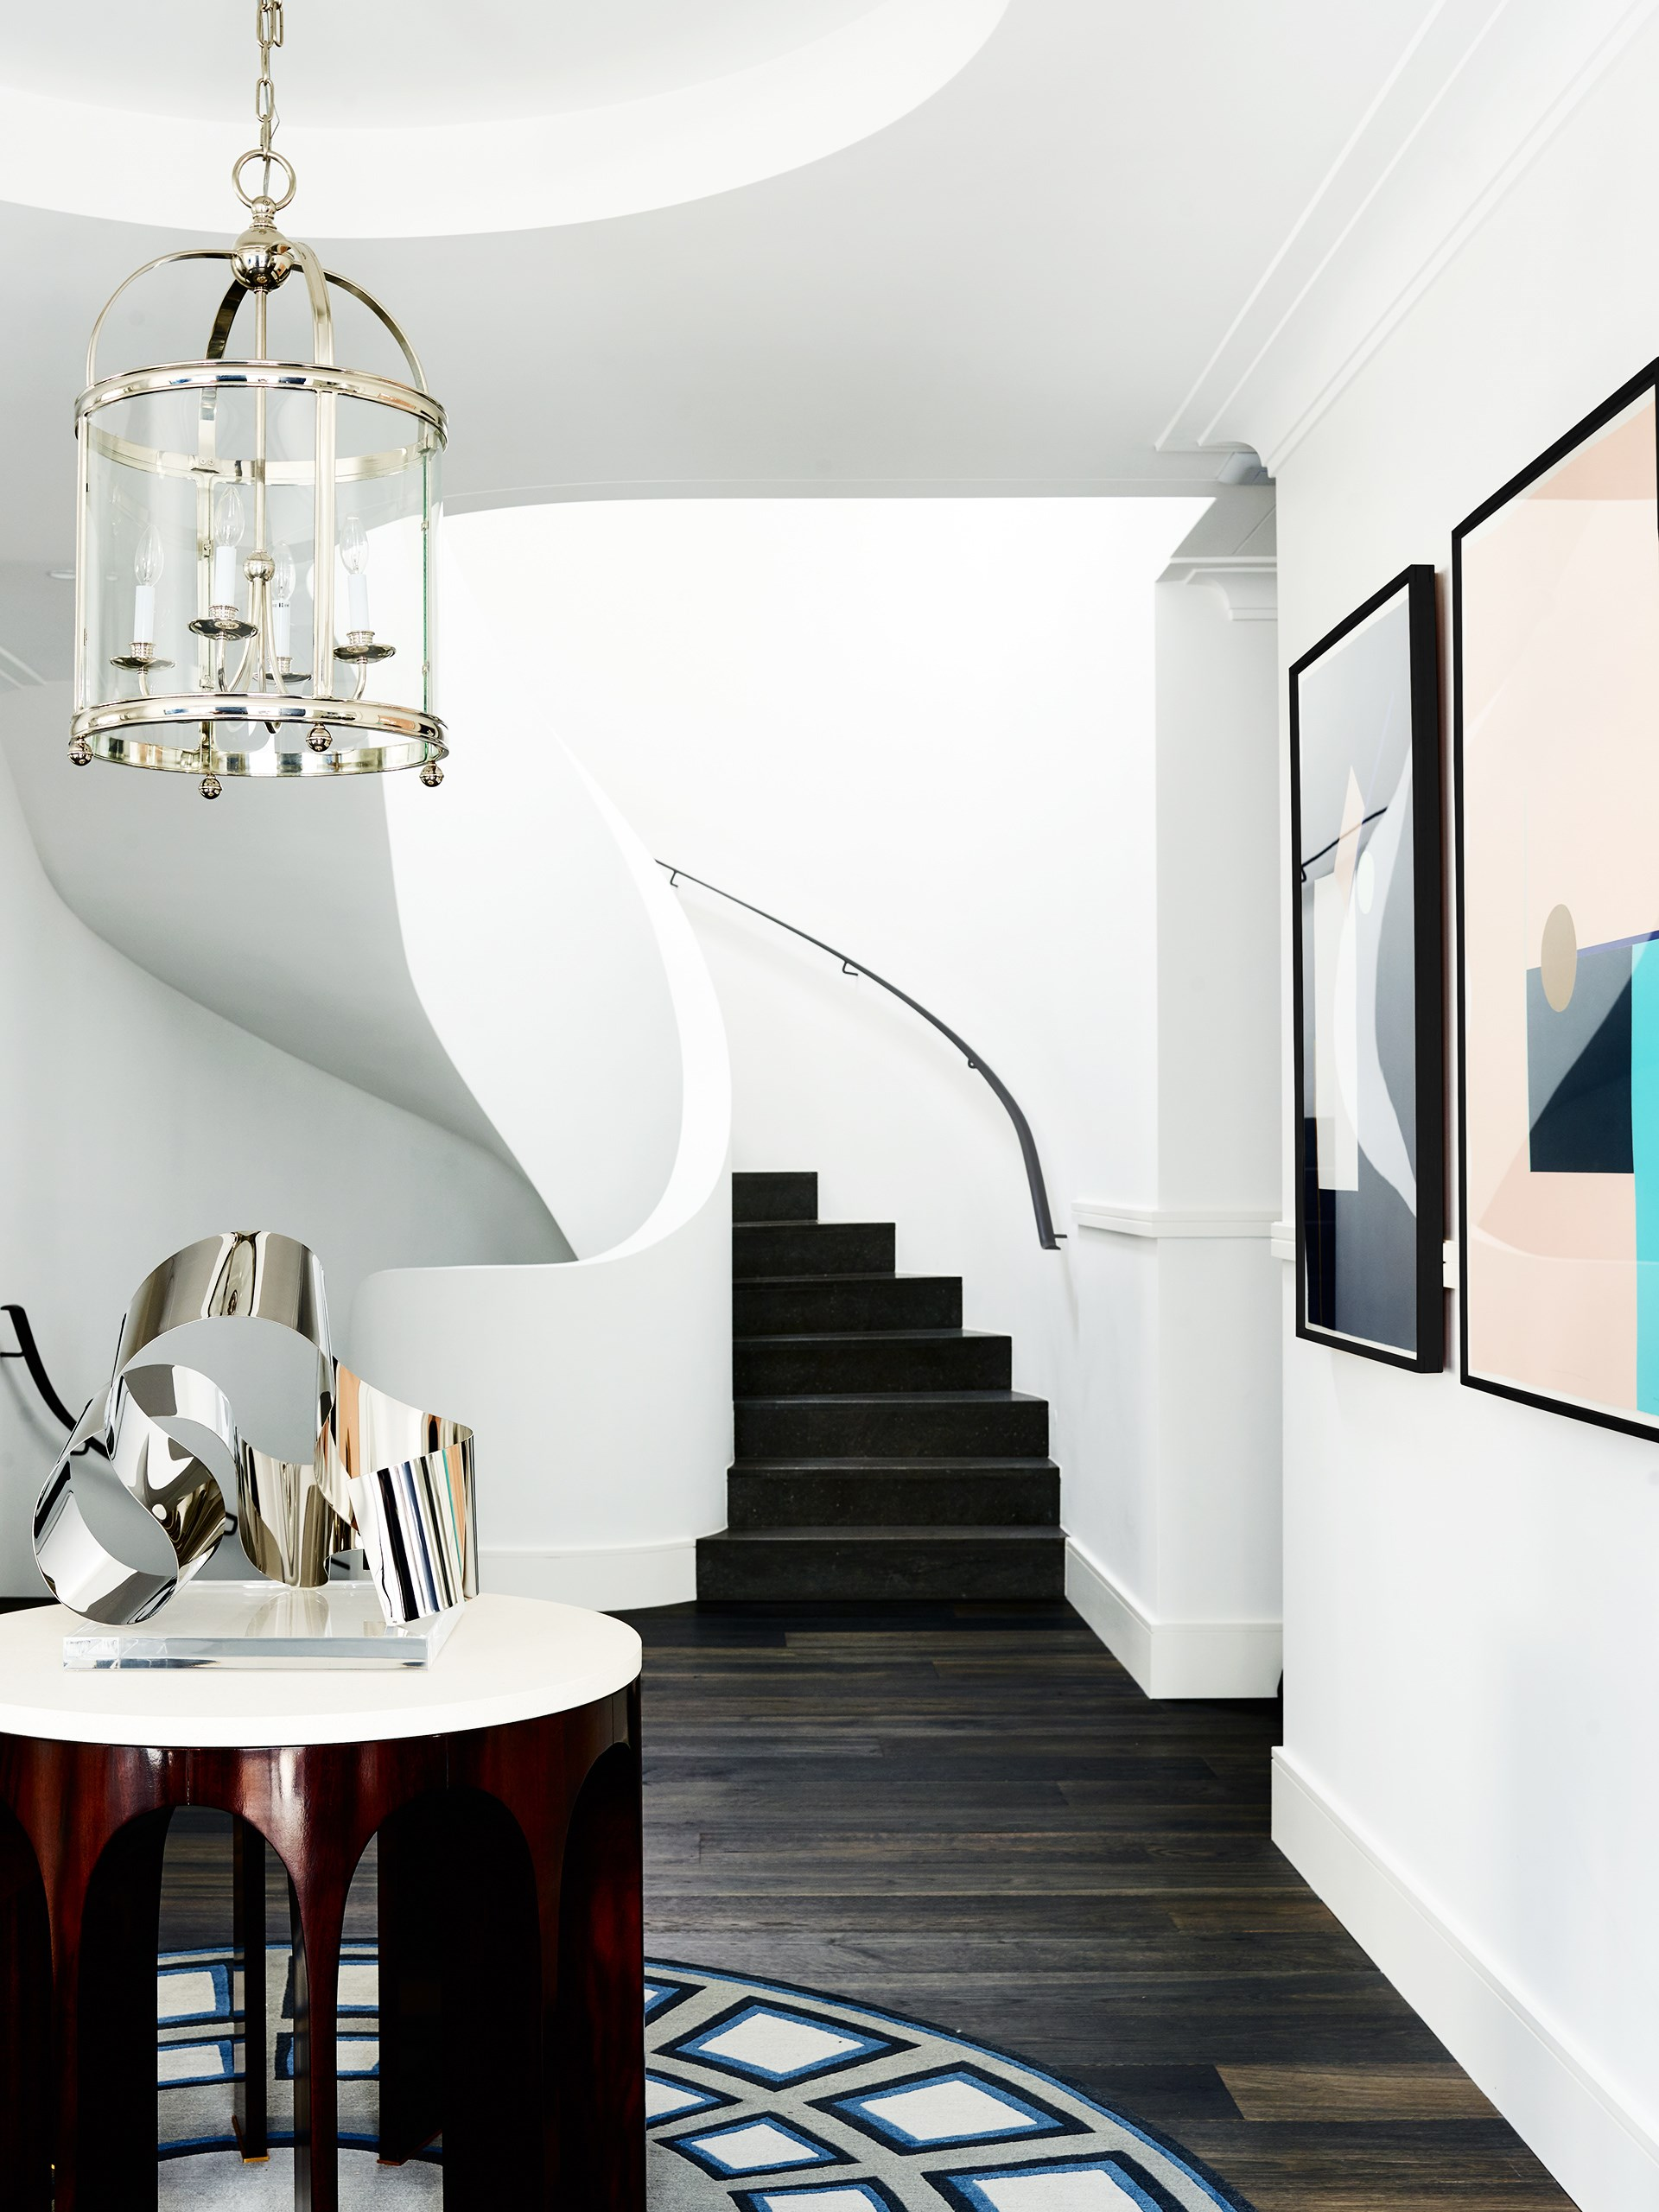 Rose Bay House by Greg Natale Design. [Vote for this project!](http://www.homestolove.com.au/readers-choice-2017-5033) *Photography: Anson Smart*